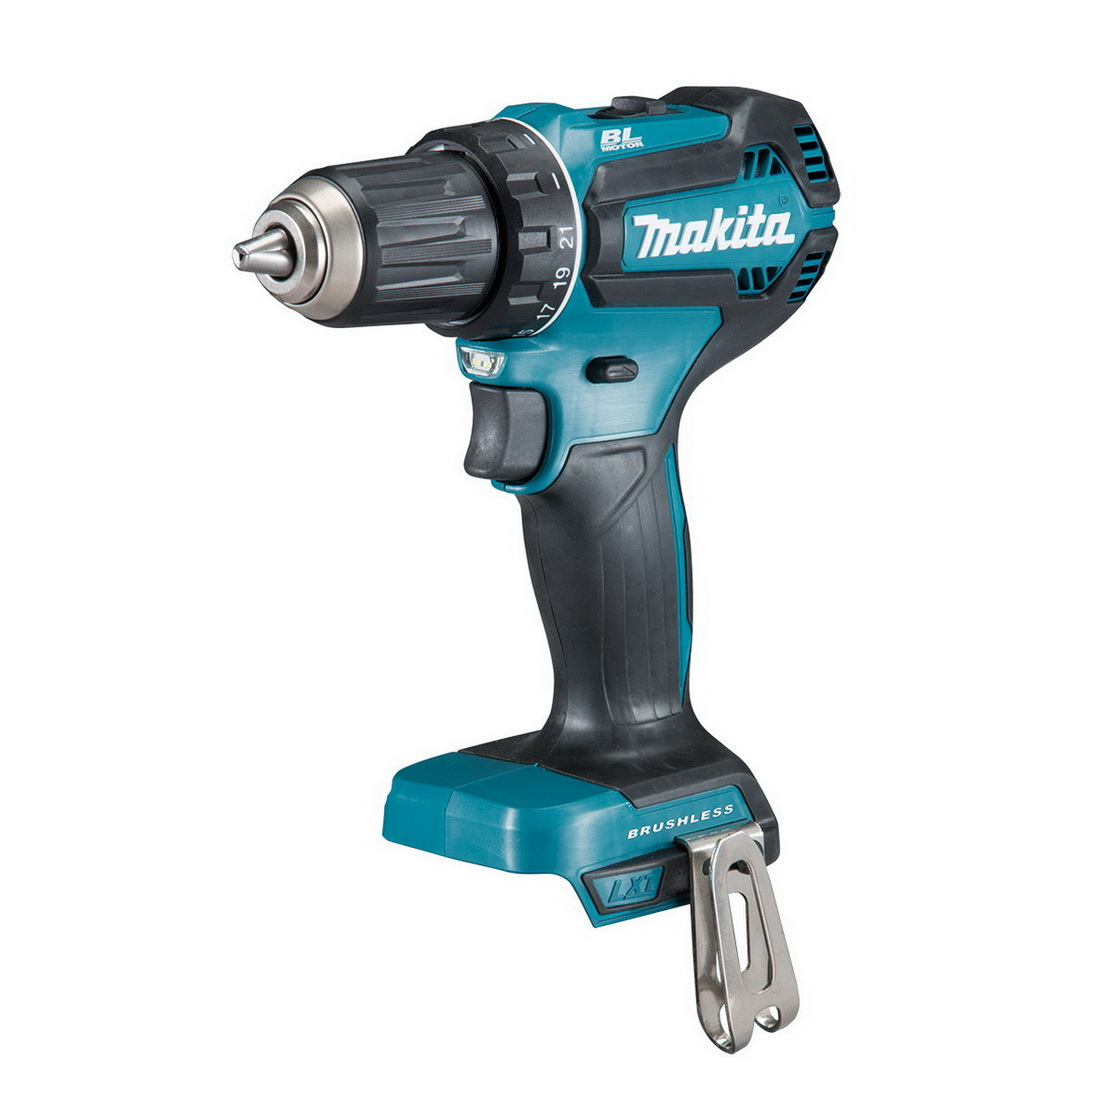 18V 13mm Lithium-Ion Cordless Brushless Drill Driver